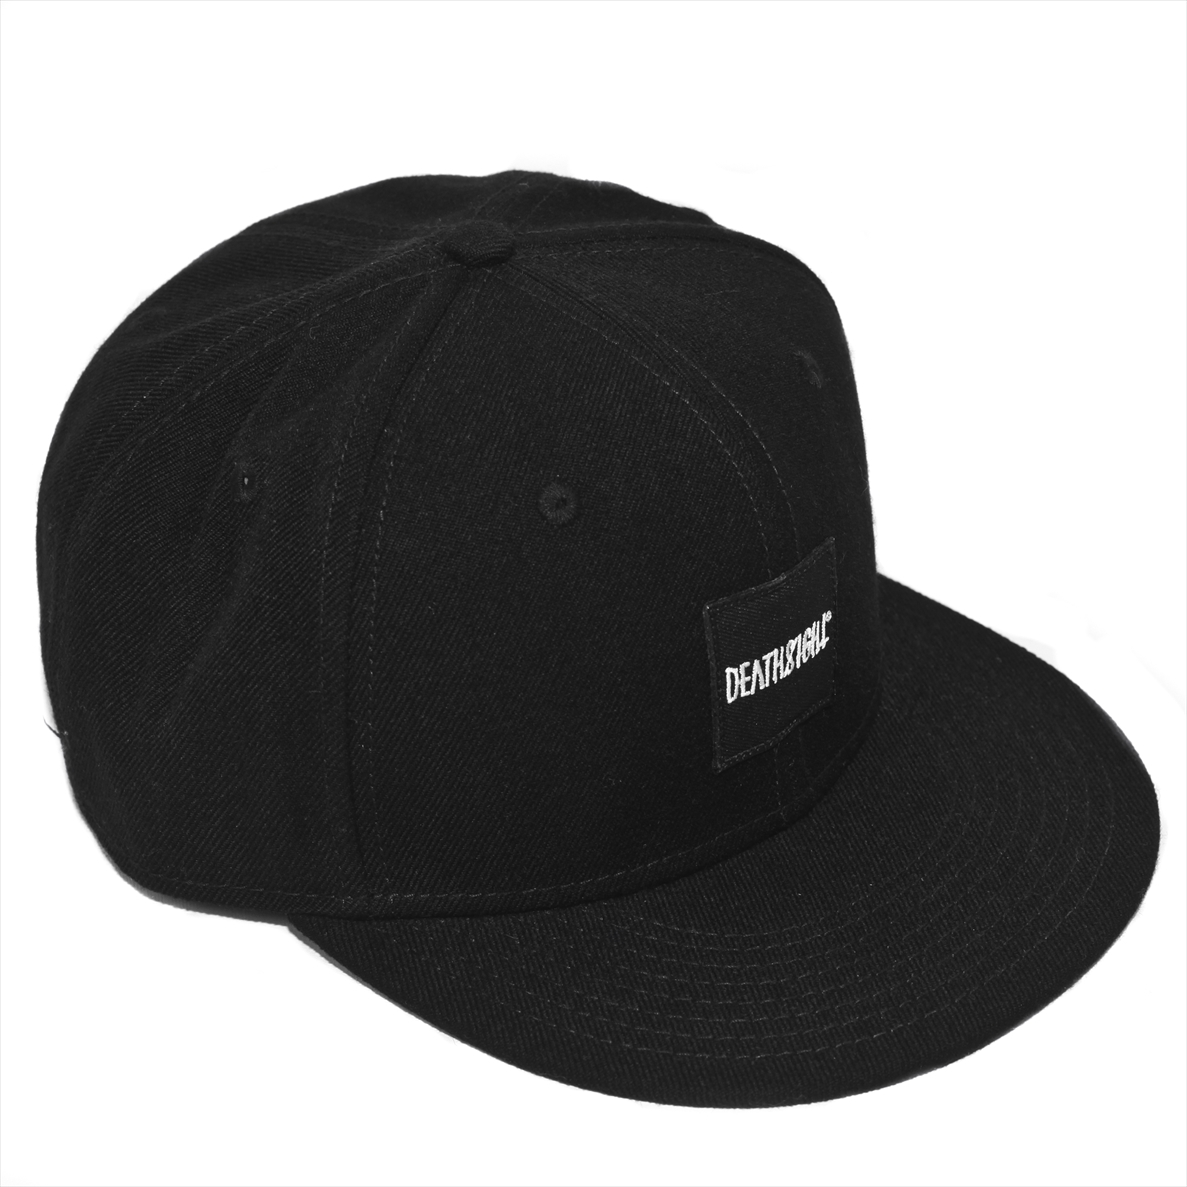 BOX LOGO CAP BLACK - 画像1